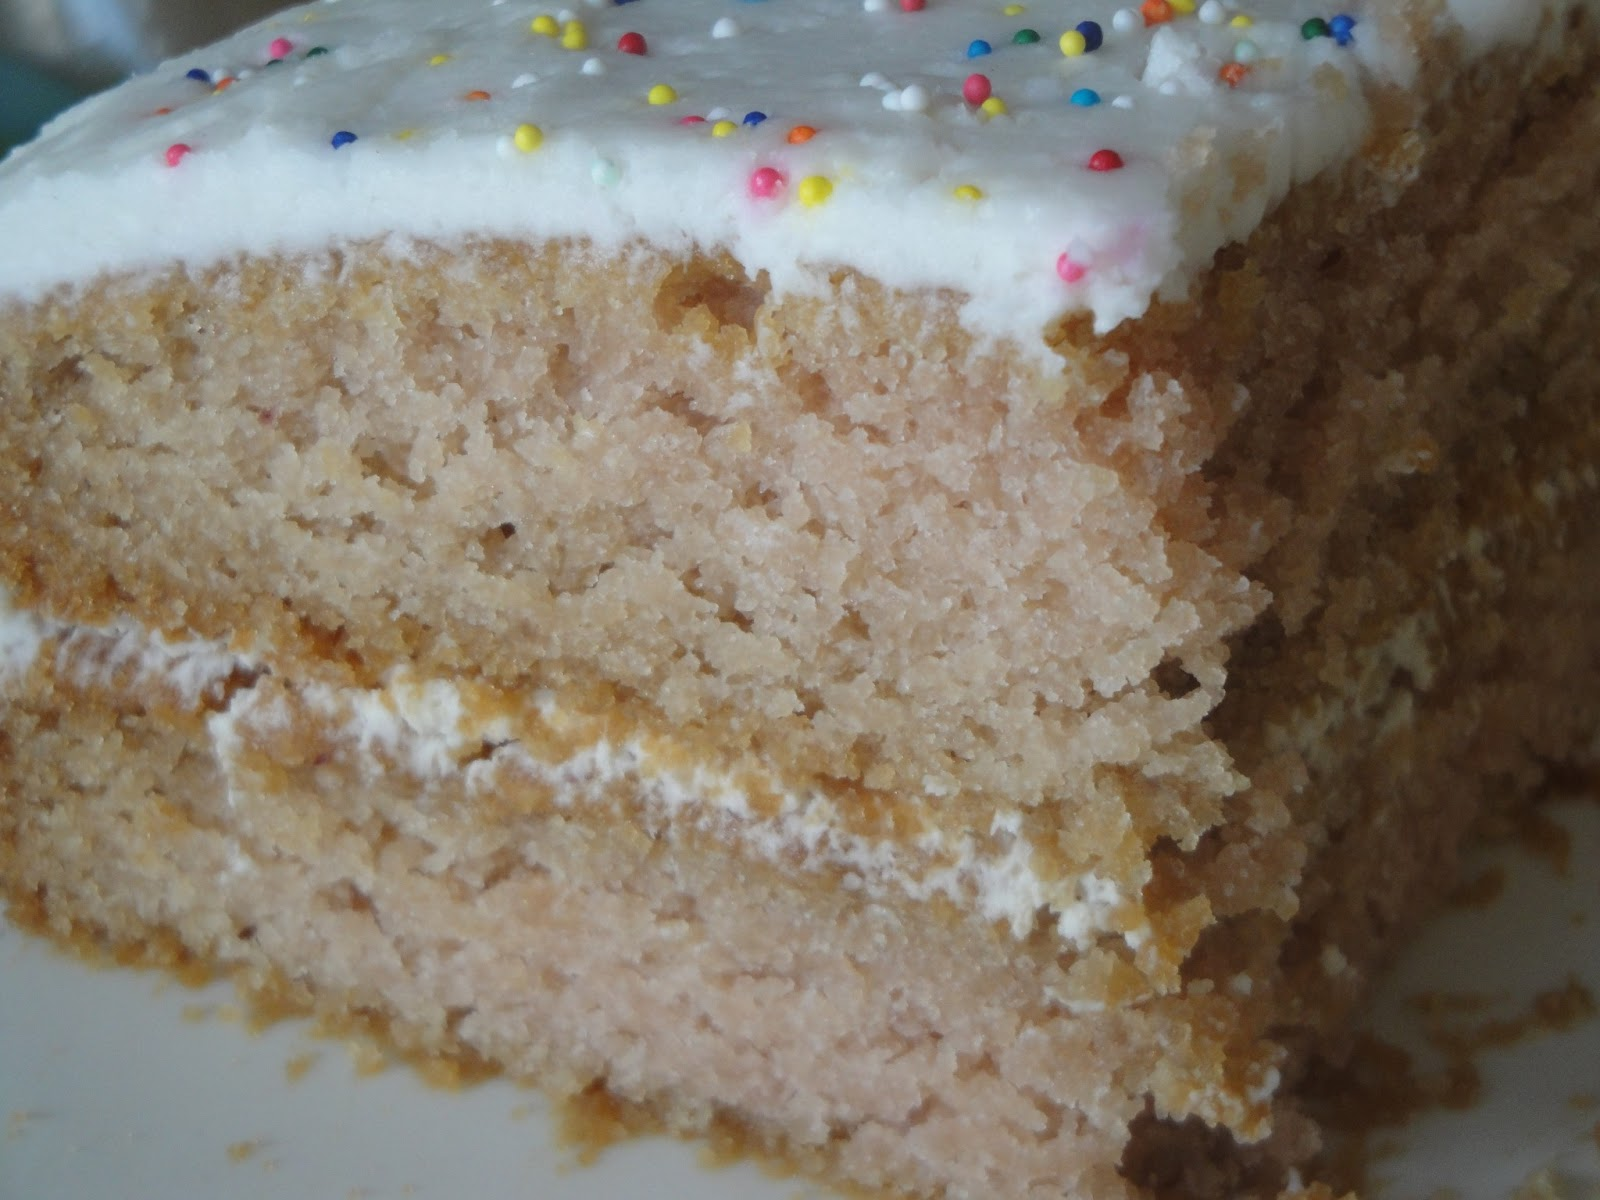 Gluten Milk Egg Free Cake Recipe